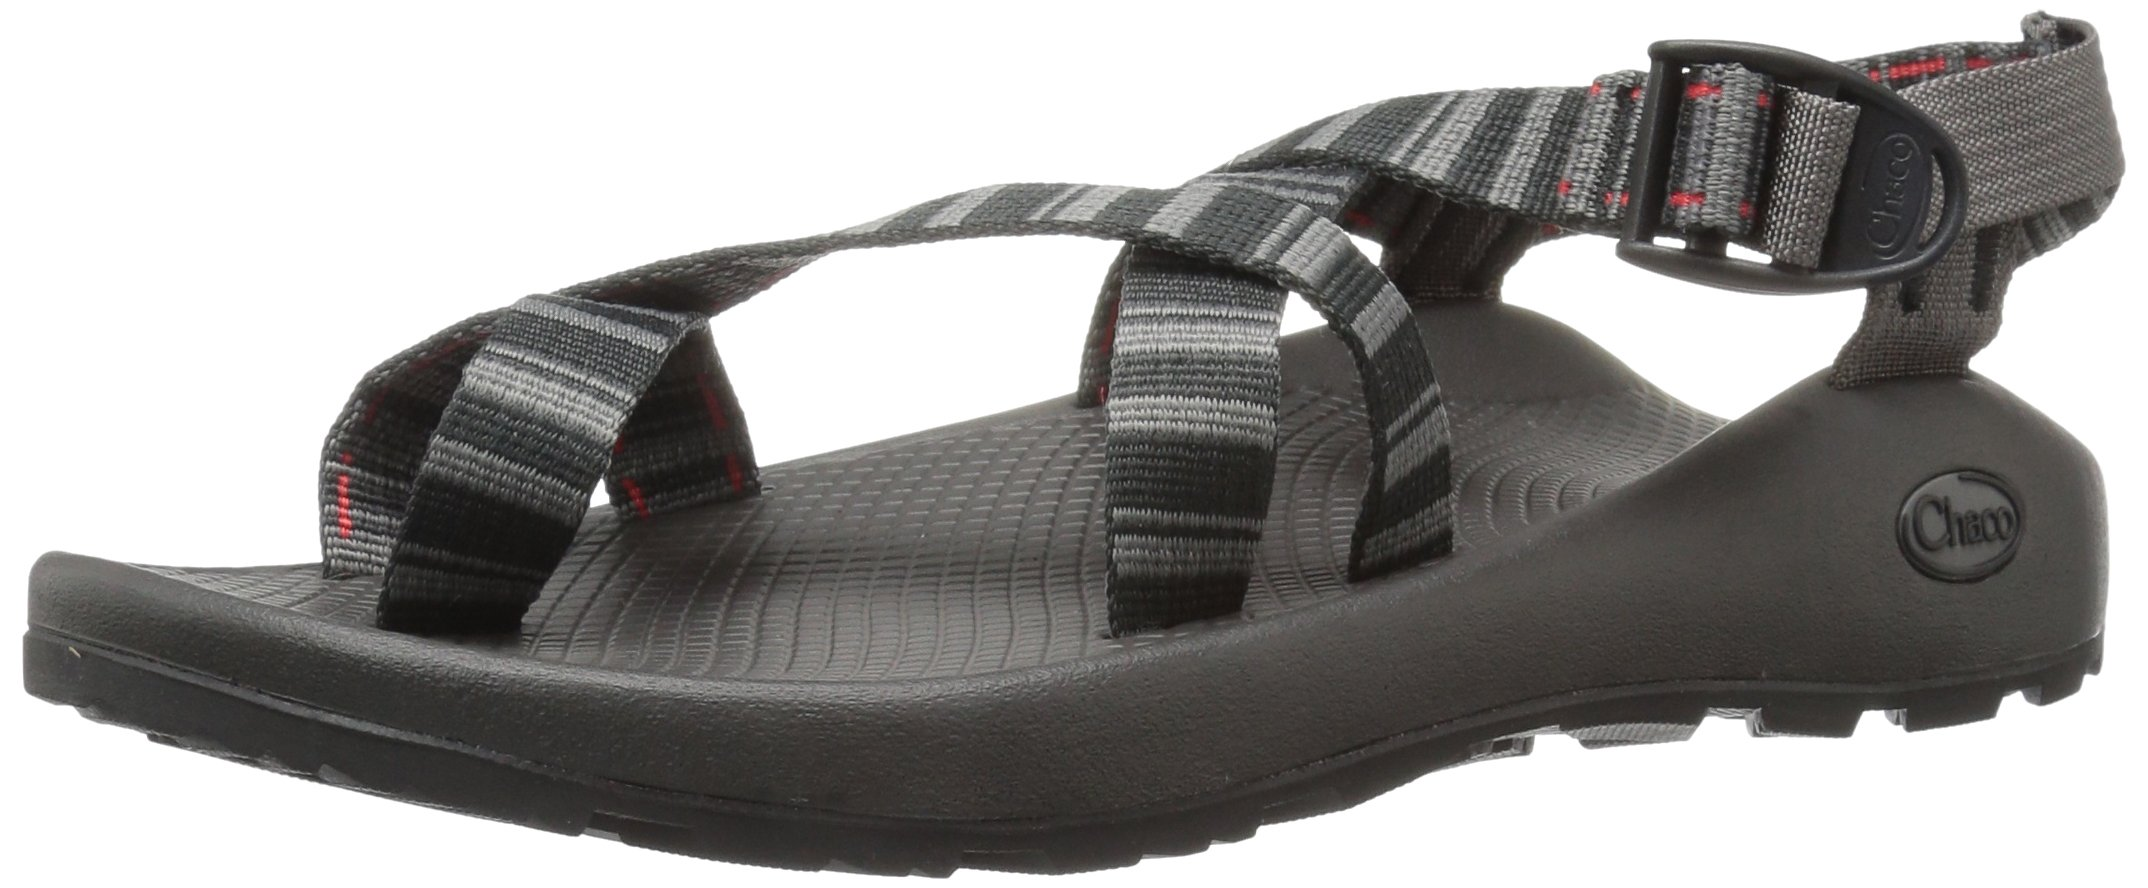 Chaco Men's Z2 Classic Athletic Sandal, Lazo Gray, 11 M US